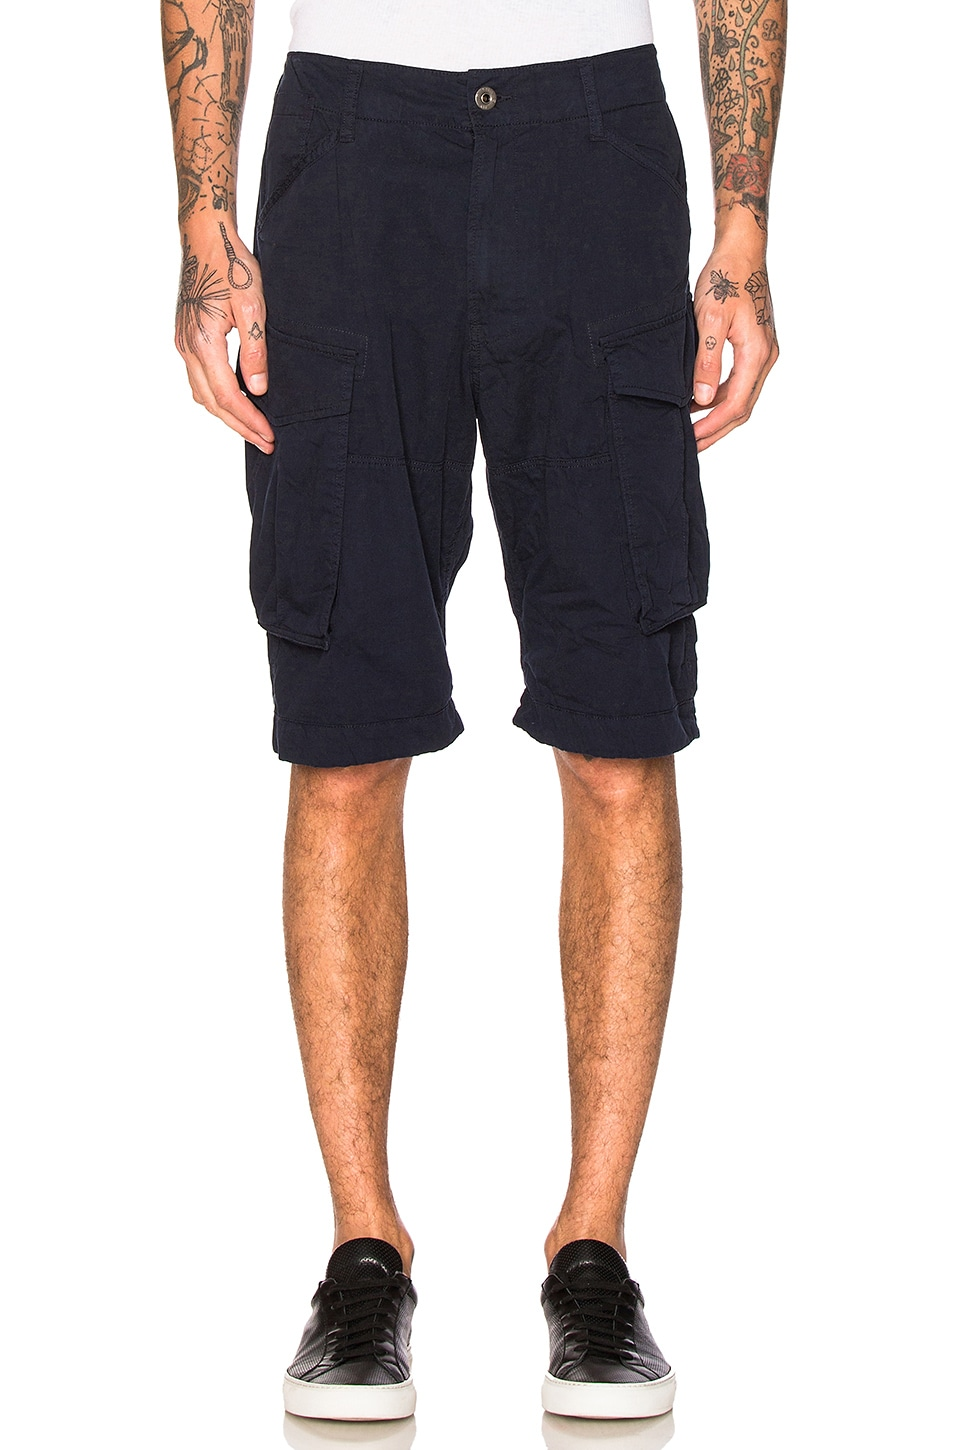 Rovic Loose Short by G-Star